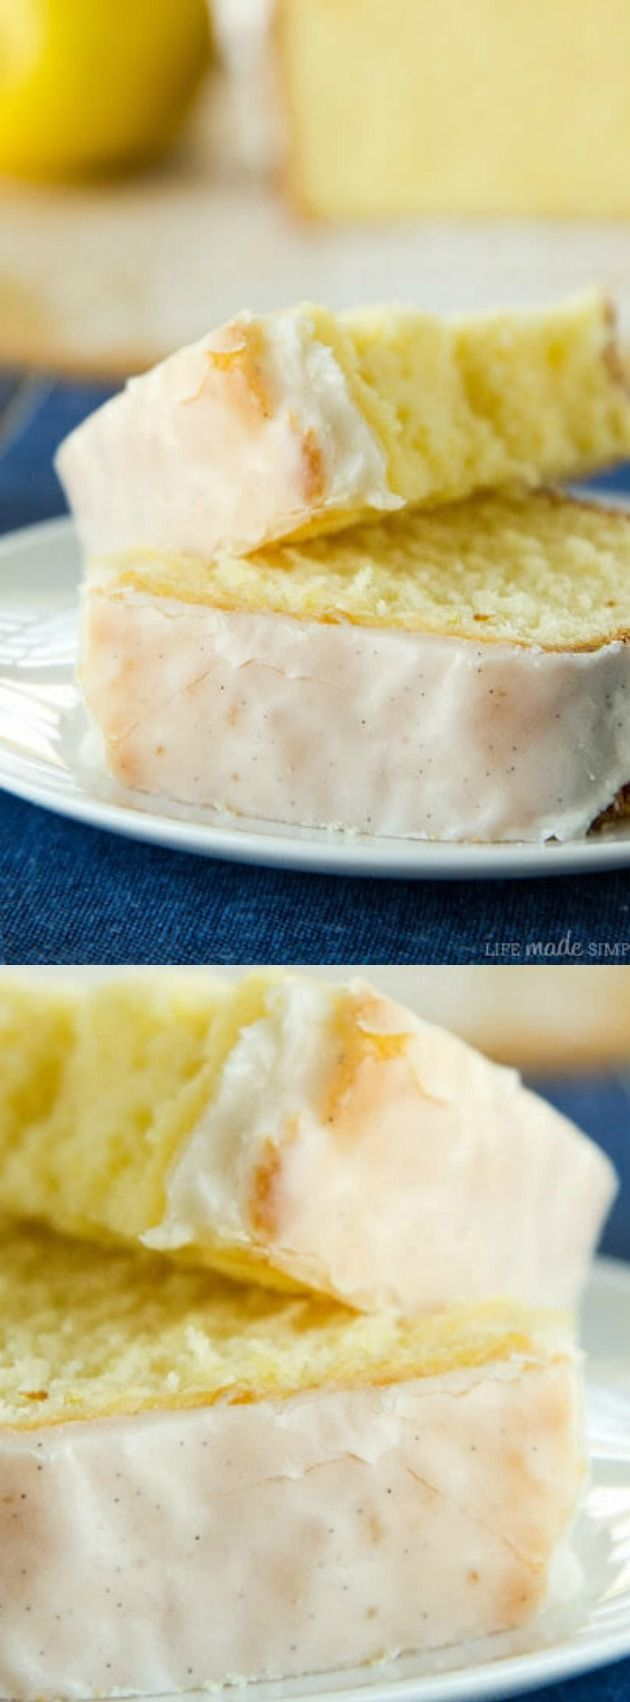 "This Lemon Pound Cake with Vanilla Bean Glaze from Life Made Simple is moist, fluffy, and totally delicious! The lemon flavor really pops and ""makes the cake""! This recipe would be perfect for Easter, Mother's Day, or even at Sunday brunch!"